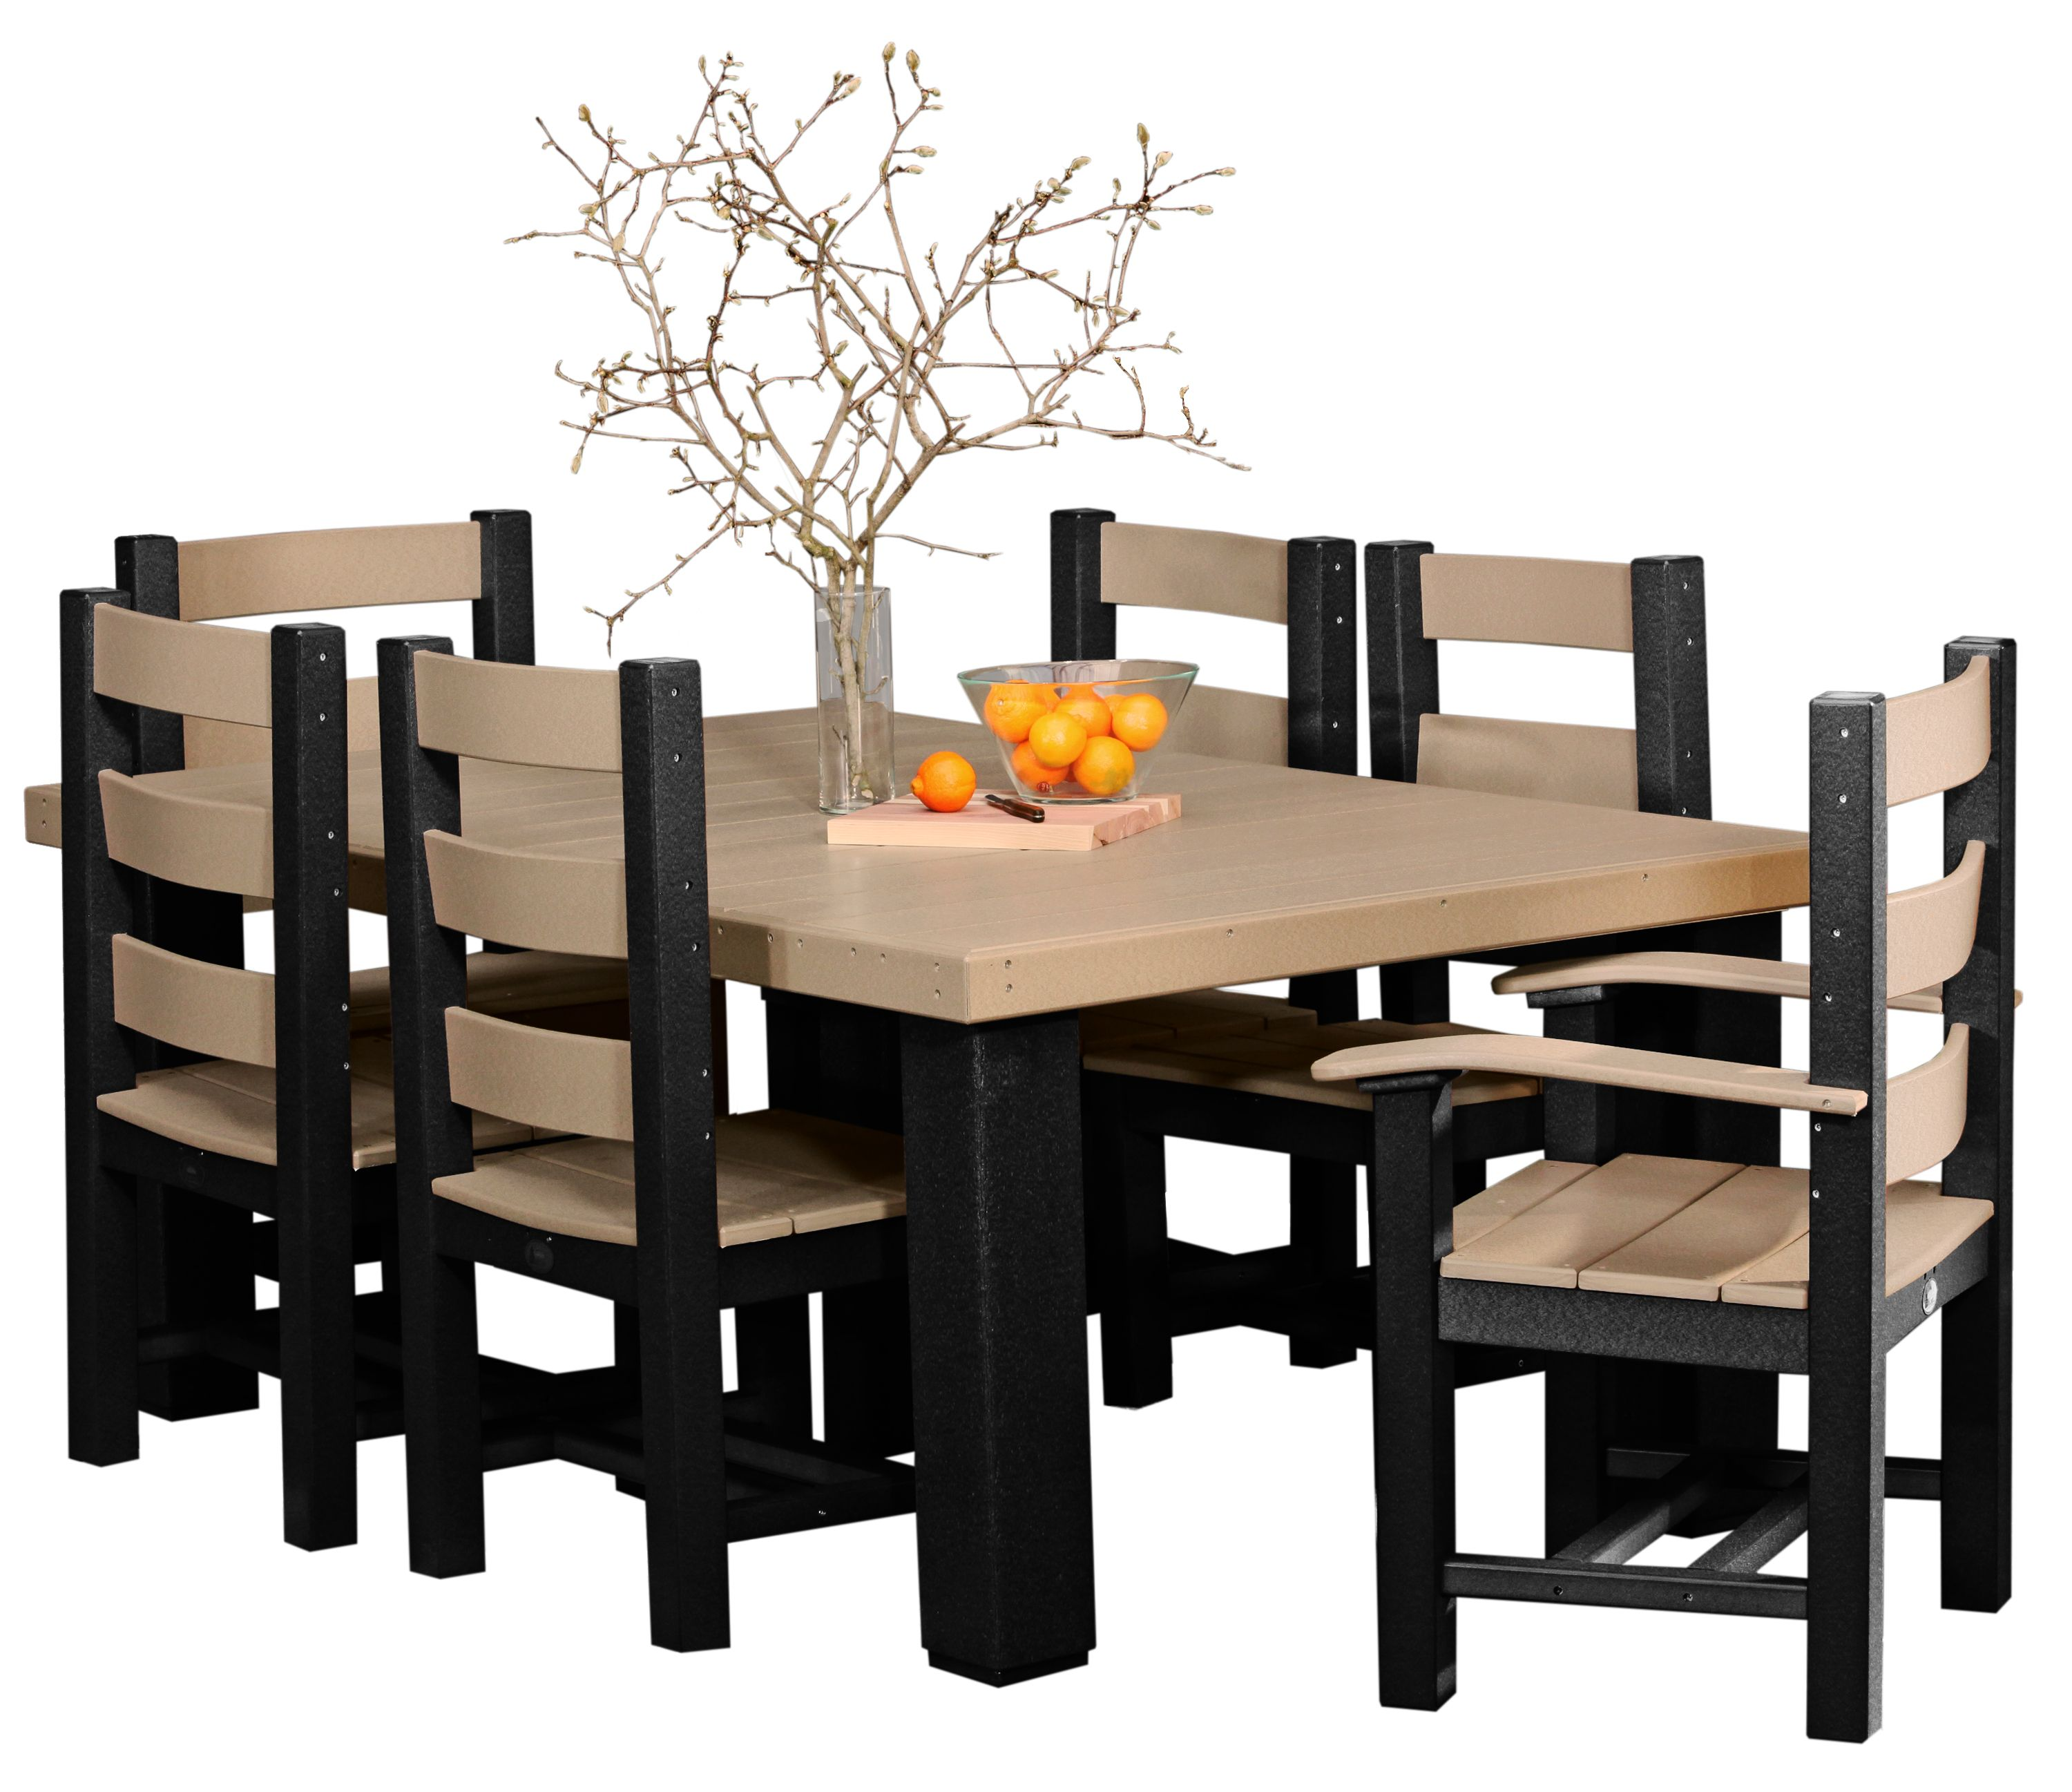 Table And Chairs Set Black Amish Kids Table And Chair Set Tables And Chairs